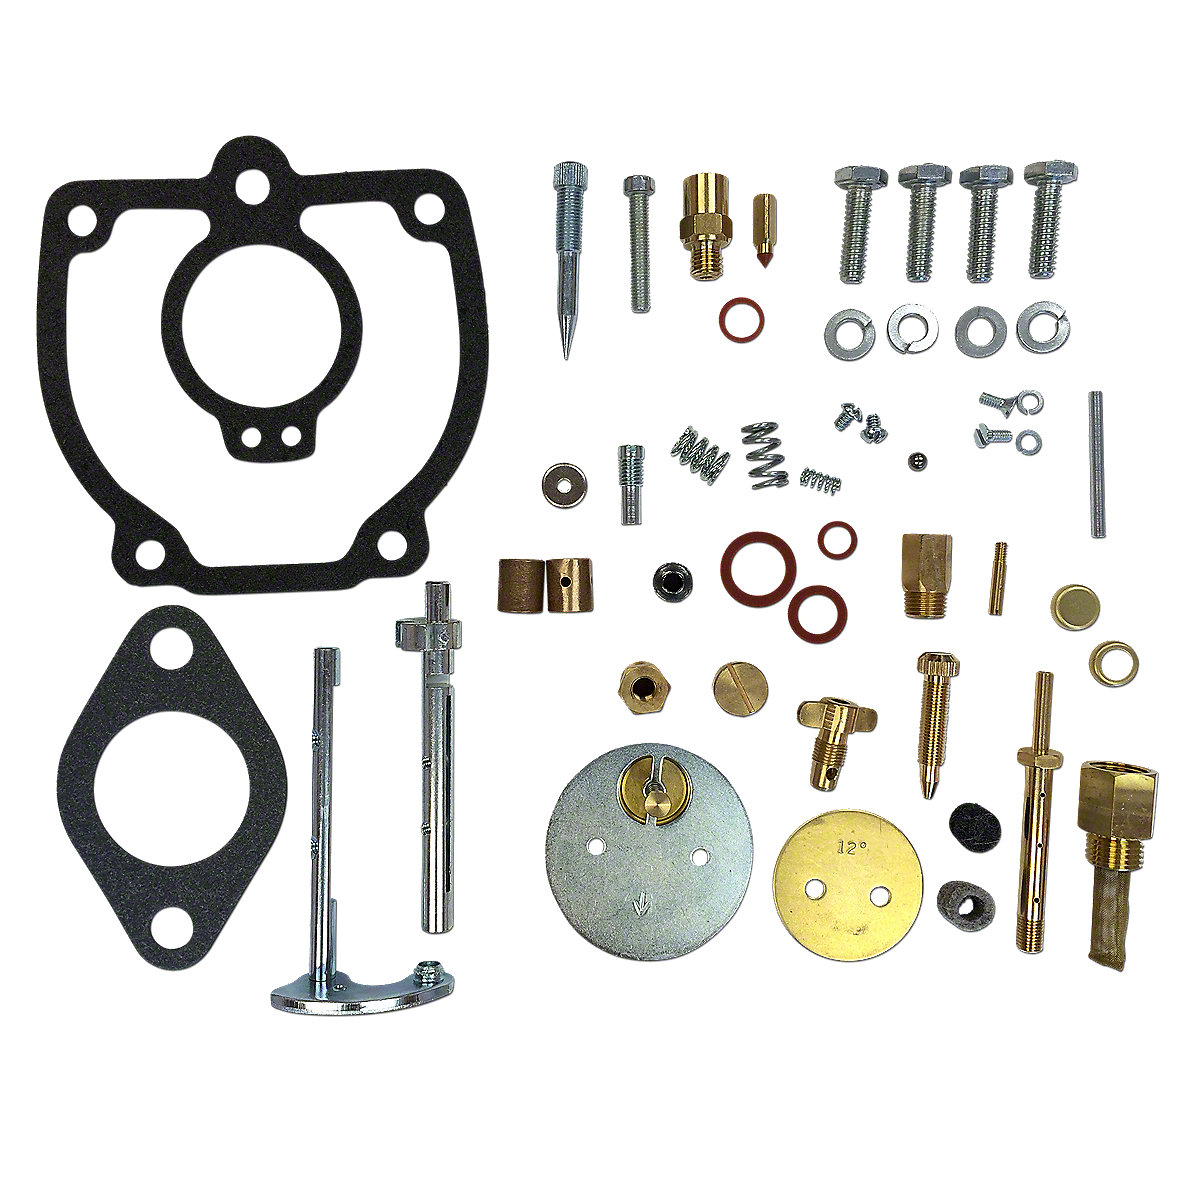 IHS3323 Premium Carburetor Repair Kit